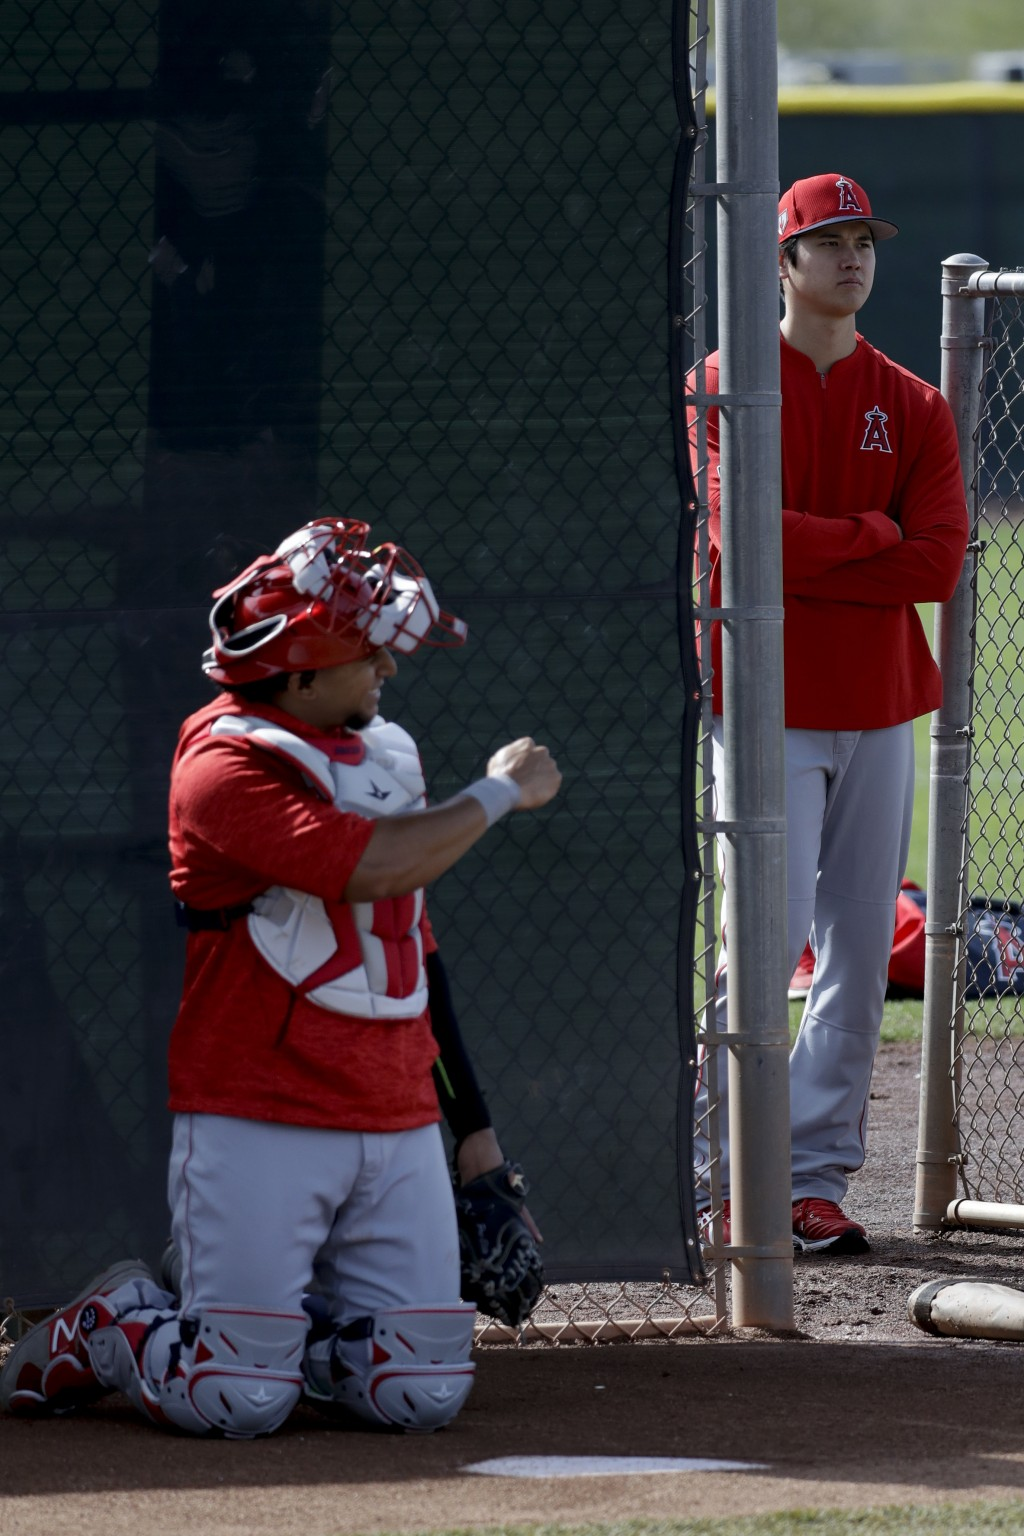 Los Angeles Angels' Shohei Ohtani, of Japan, right, watches pitchers during spring training baseball in Tempe, Ariz., Friday, Feb. 15, 2019. (AP Photo...